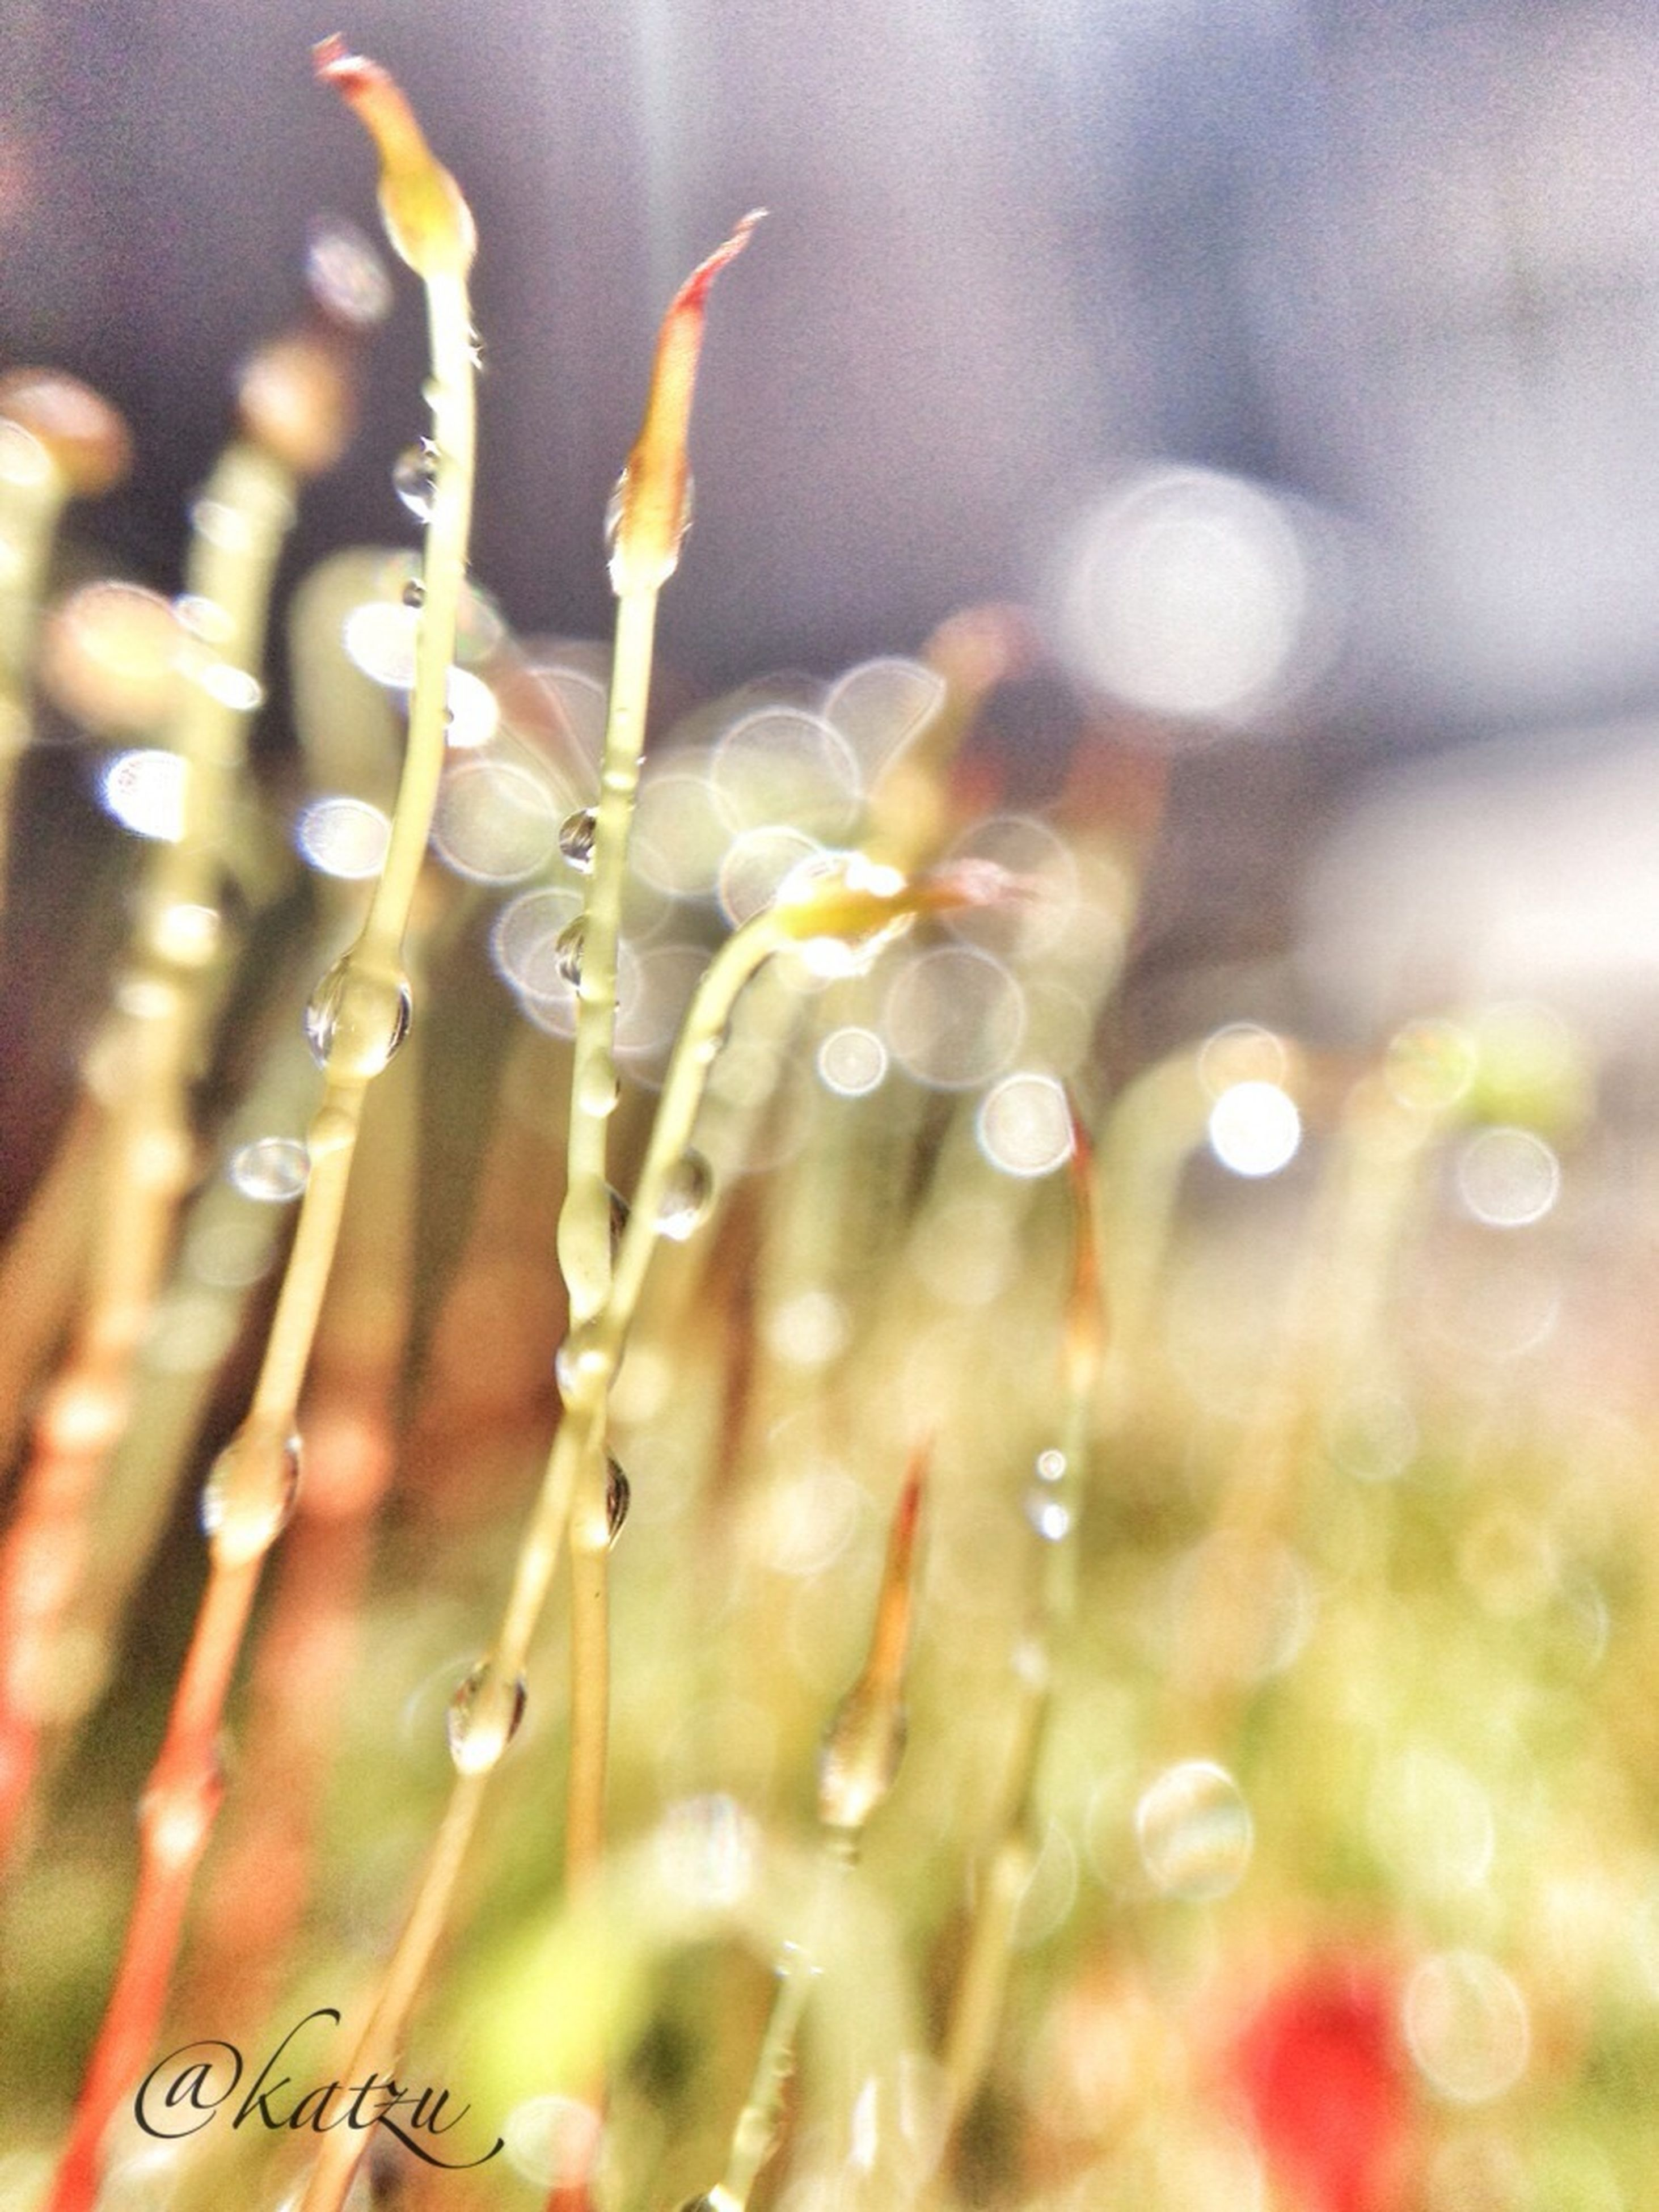 growth, freshness, flower, close-up, focus on foreground, fragility, nature, beauty in nature, plant, selective focus, drop, bud, stem, water, wet, day, dew, outdoors, petal, no people